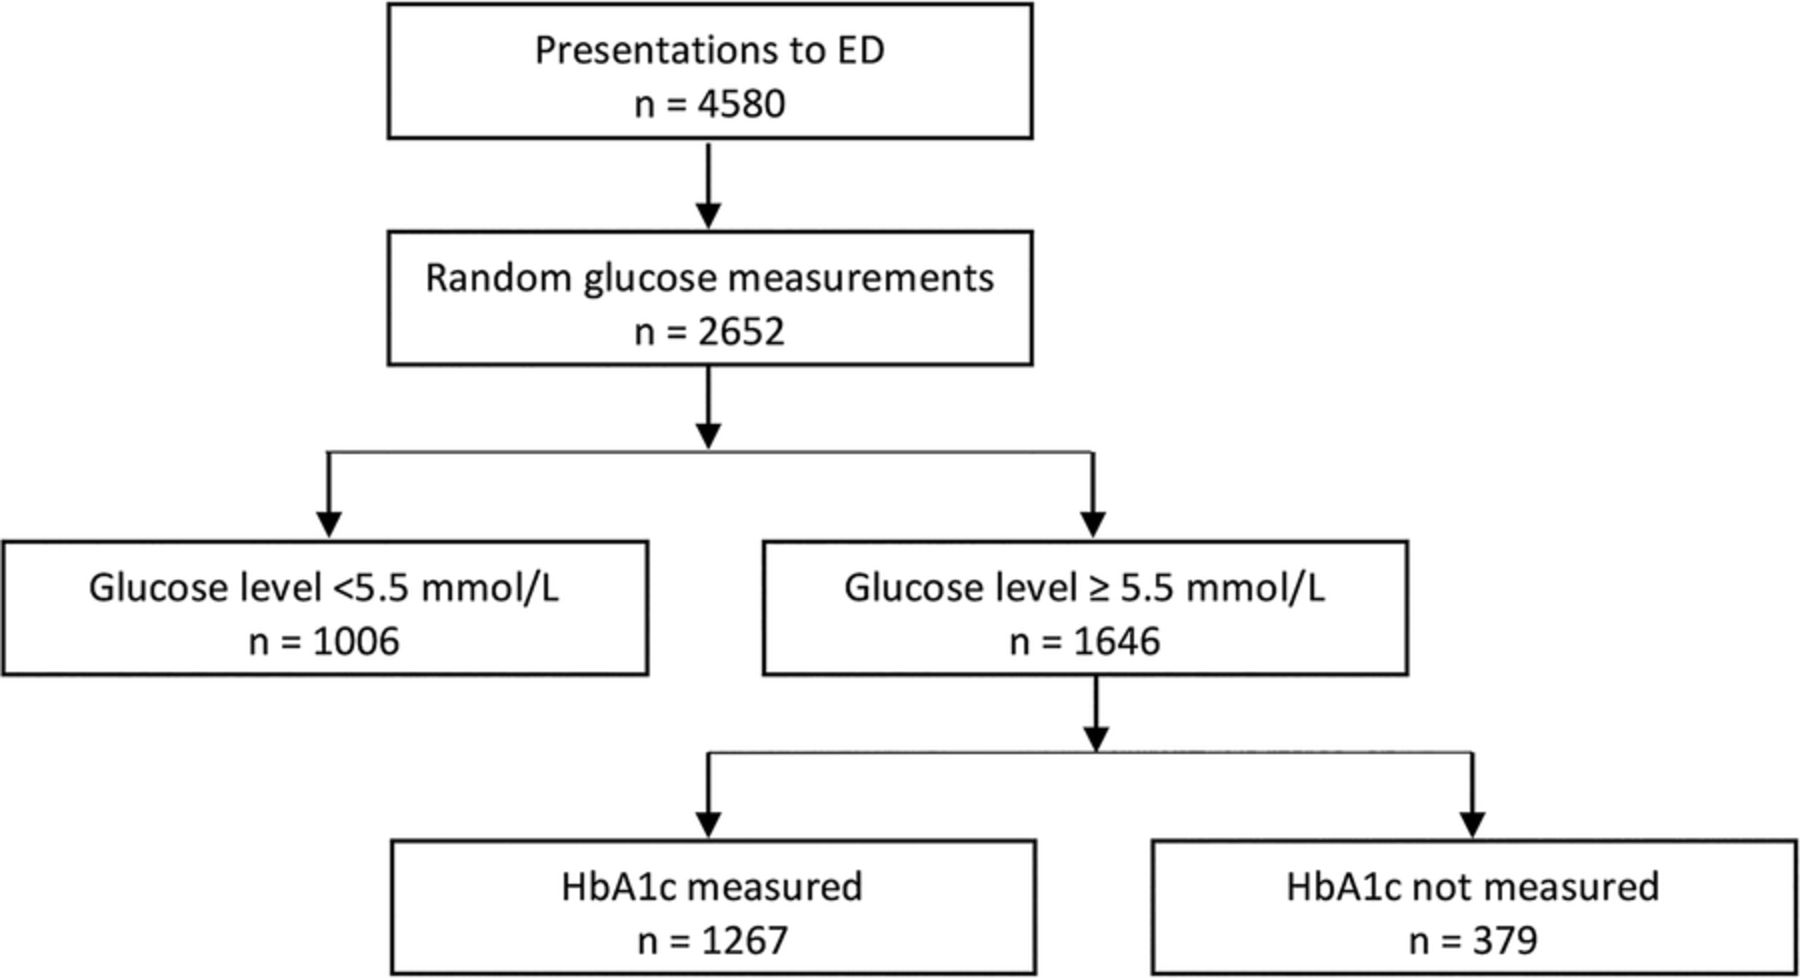 Diabetes case finding in the emergency department, using